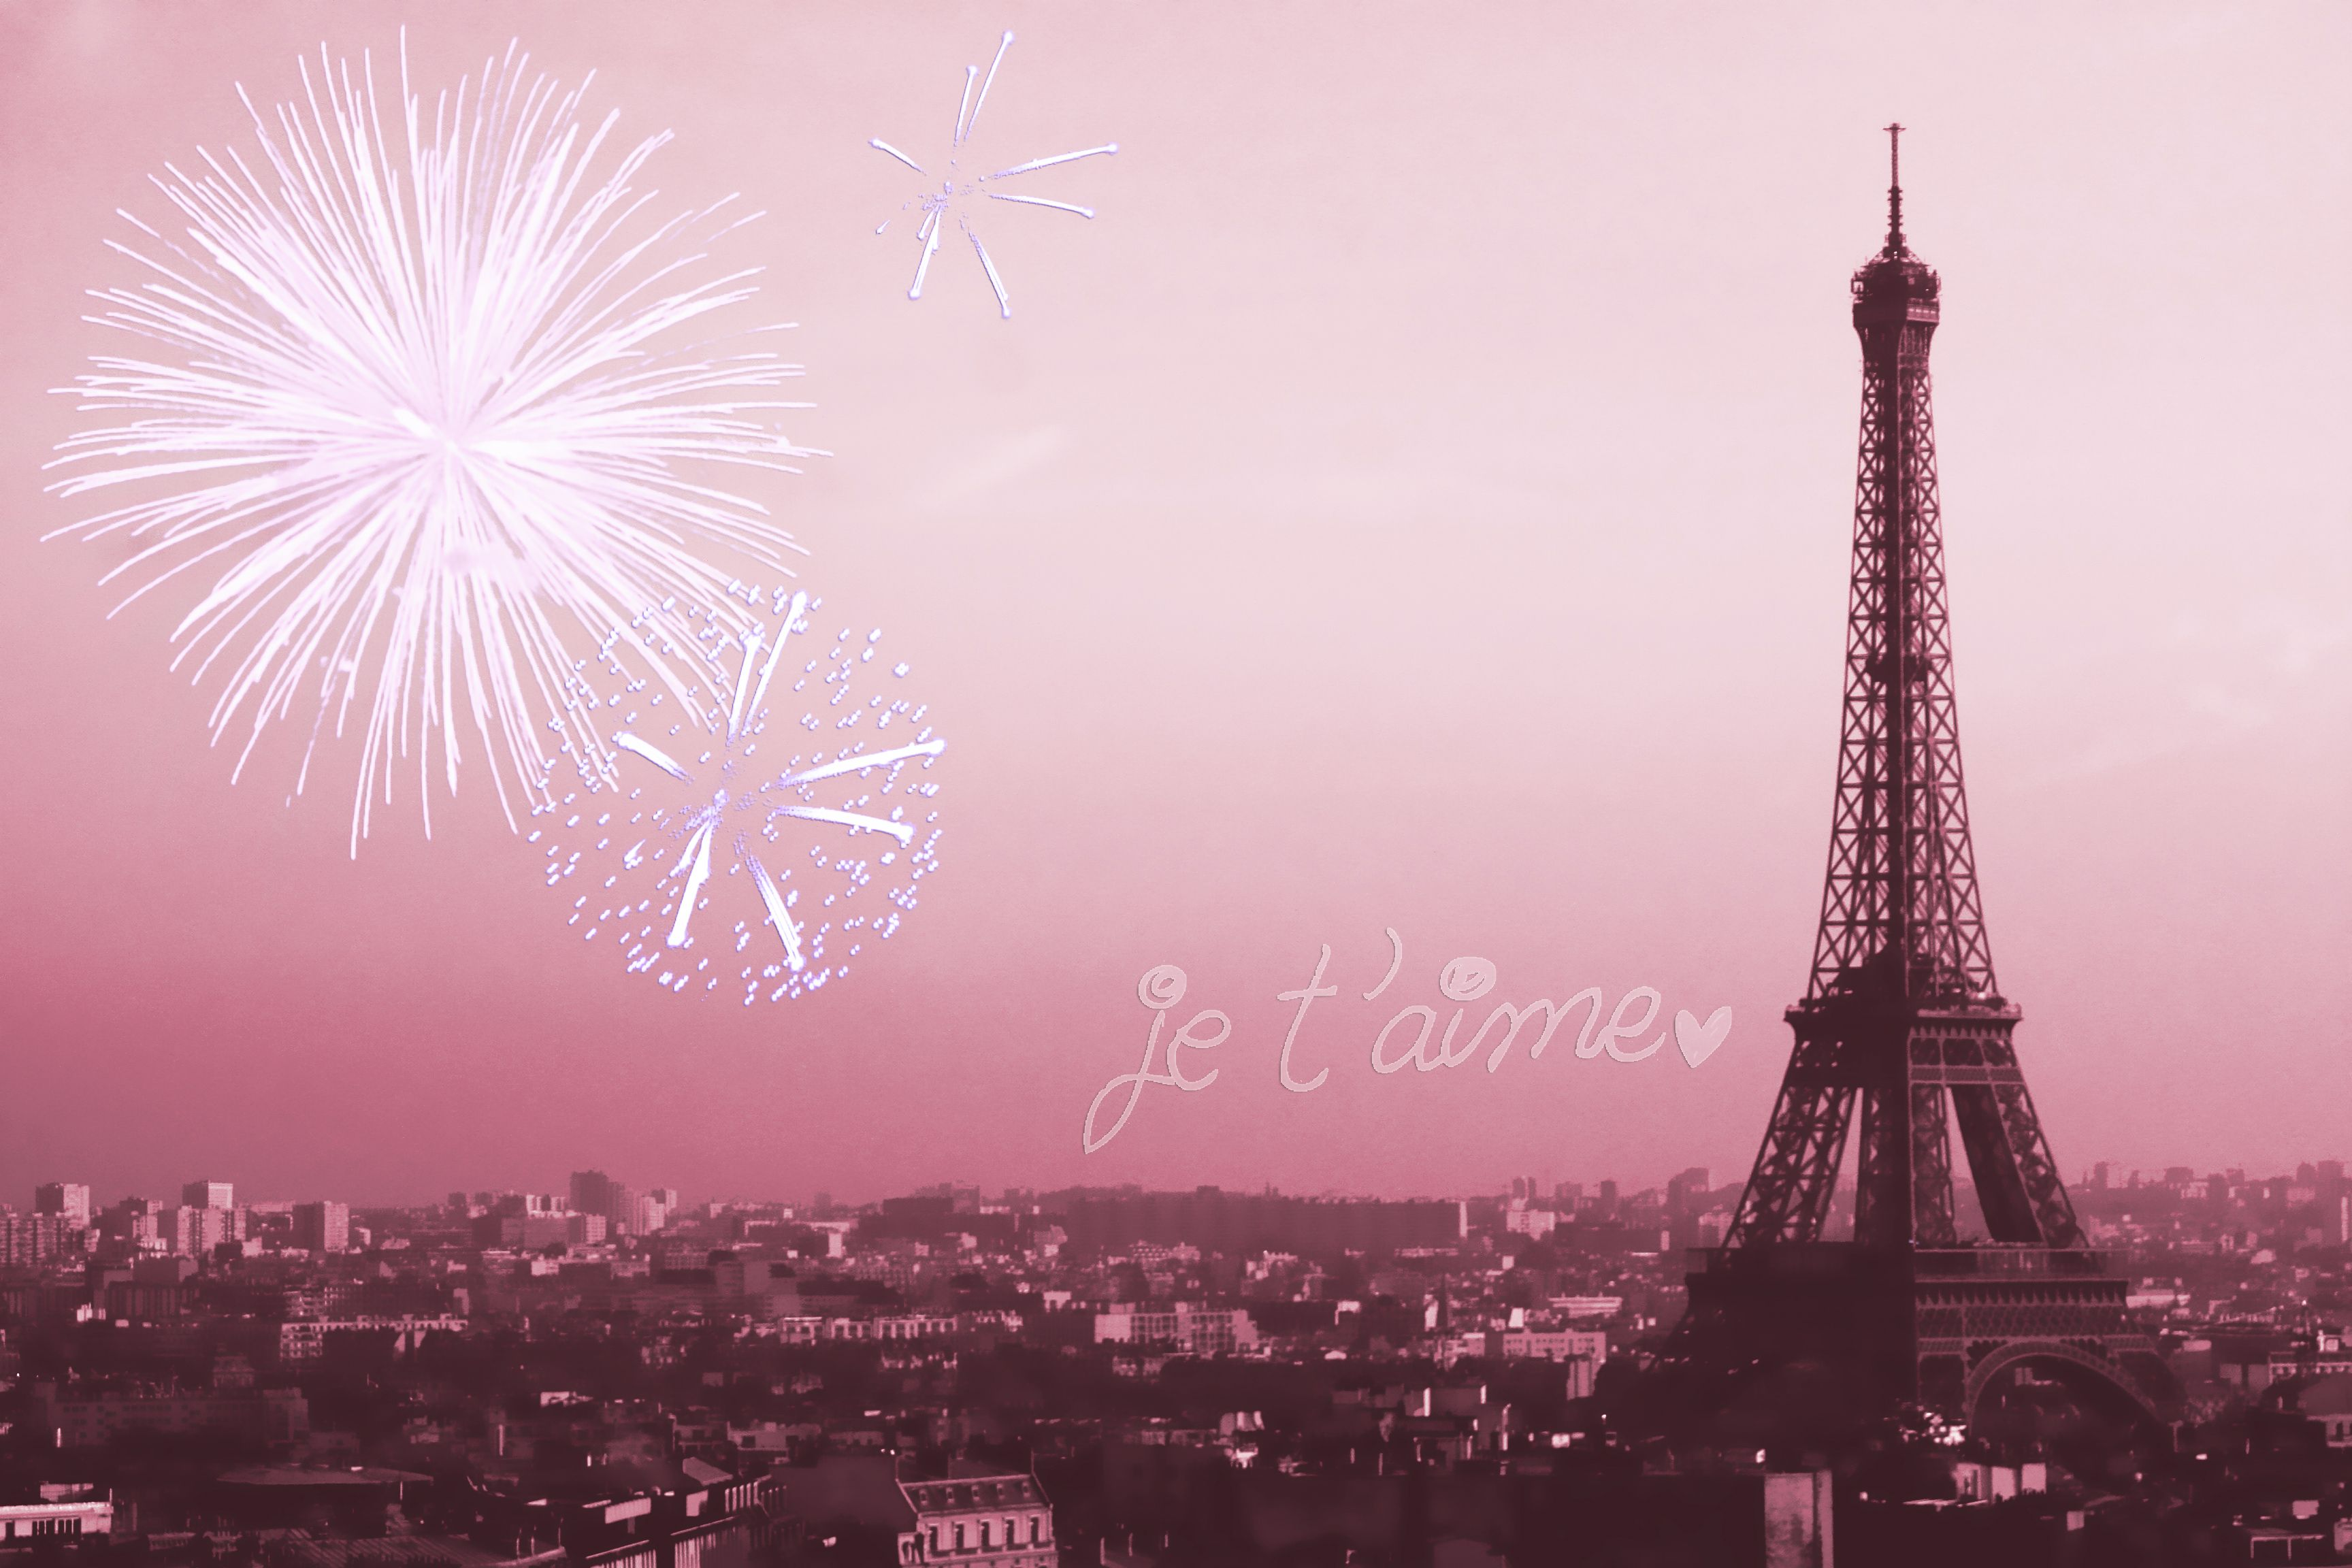 30 Girly Paris Wallpapers Download At 1026044 Png Images Pngio